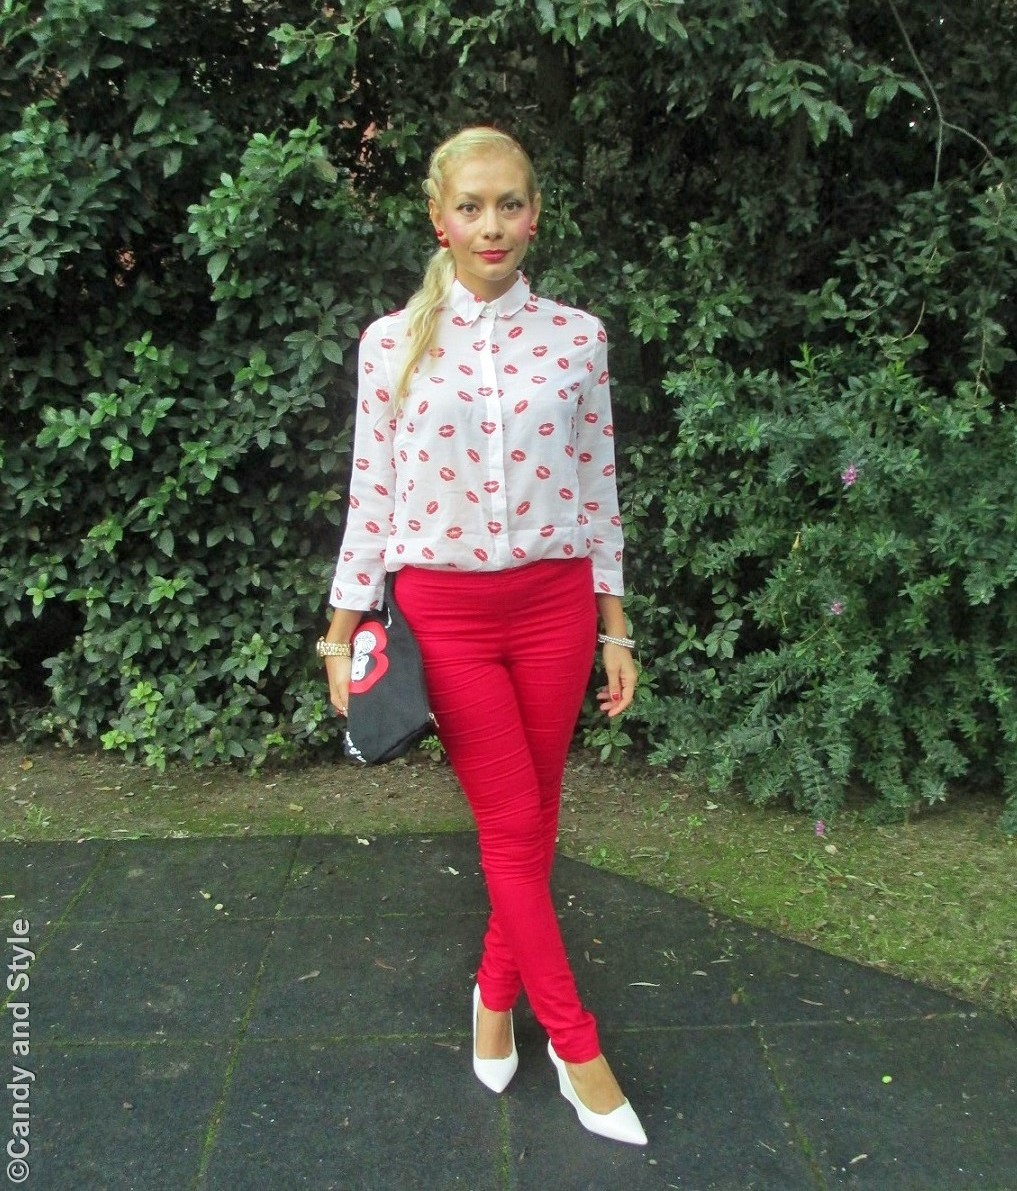 LipsShirt, RedLeggings, WhiteWedges, Pouch, FrenchBraid - Lilli Candy and Style Fashion Blog